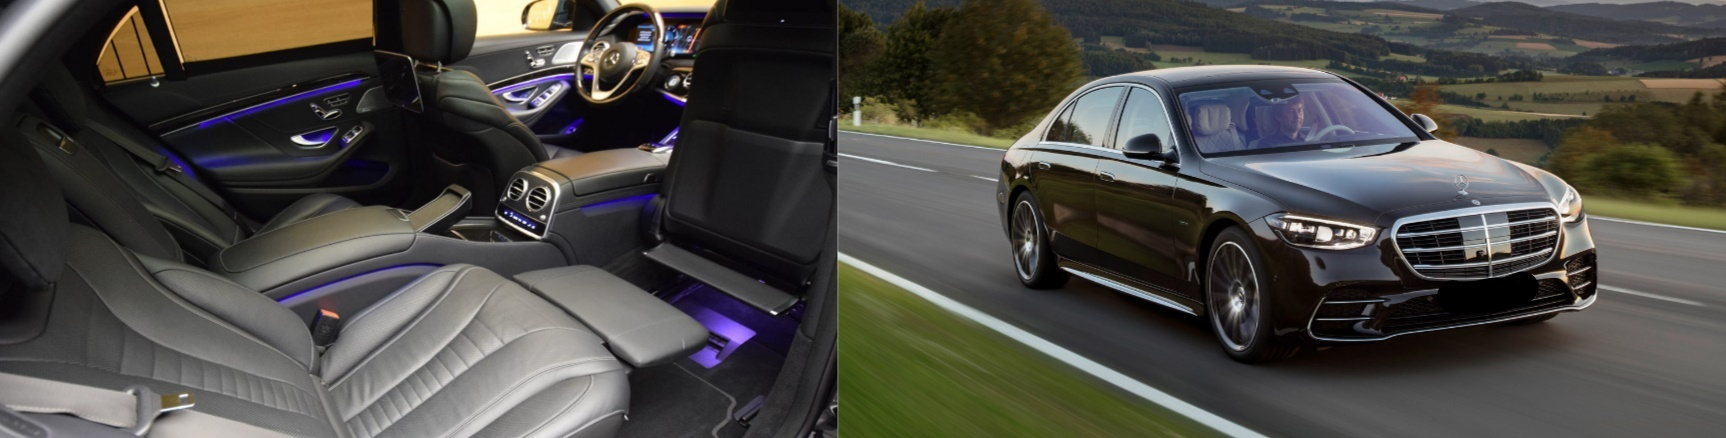 hire this first class mercdes s class in black and enjoy your gstaad chauffeured limousine service